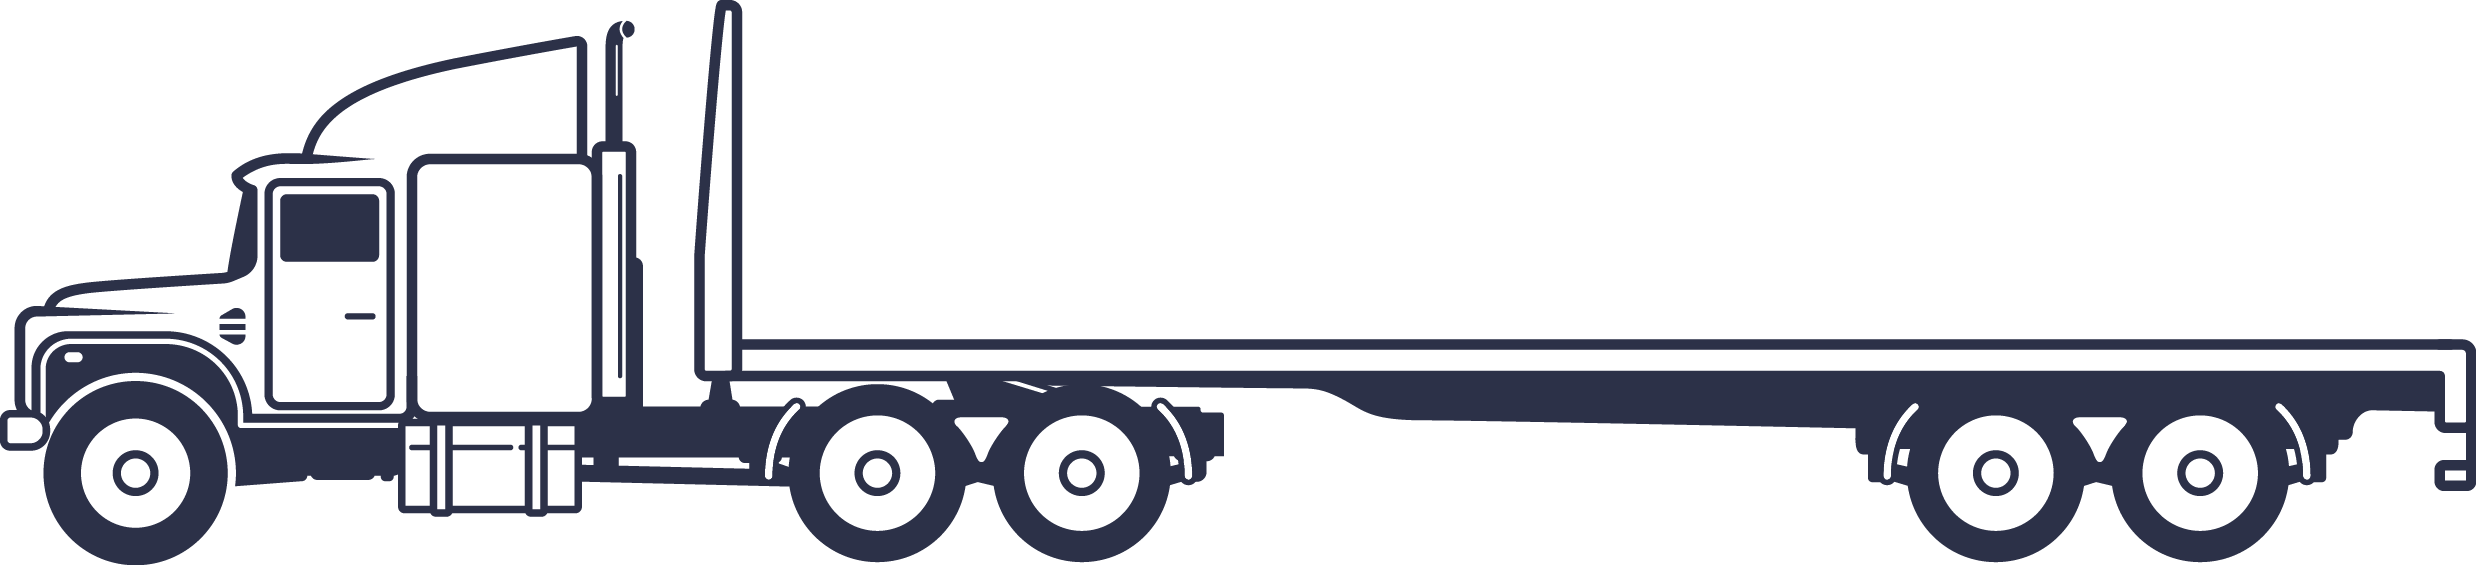 Flatbed trailer clipart png freeuse stock Flatbed Truck Clipart (95+ images in Collection) Page 1 png freeuse stock